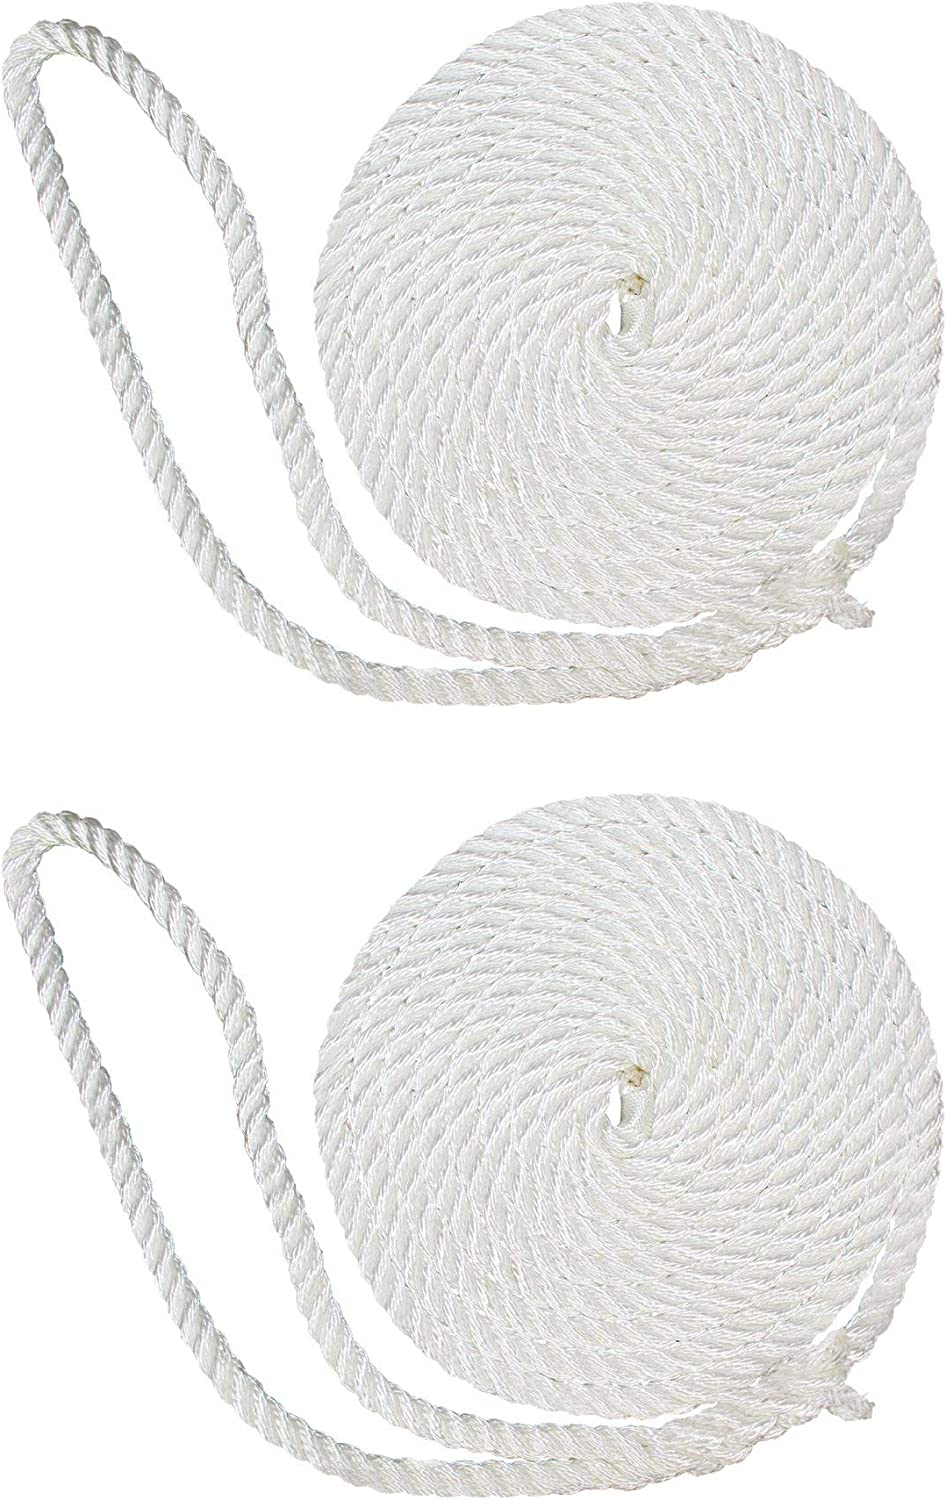 SGT KNOTS Twisted Nylon Dockline Dock Lines - 3-Strand Twist Nylon Rope Docklines Marine Ropes for Boat//Boats 2-Pack, White